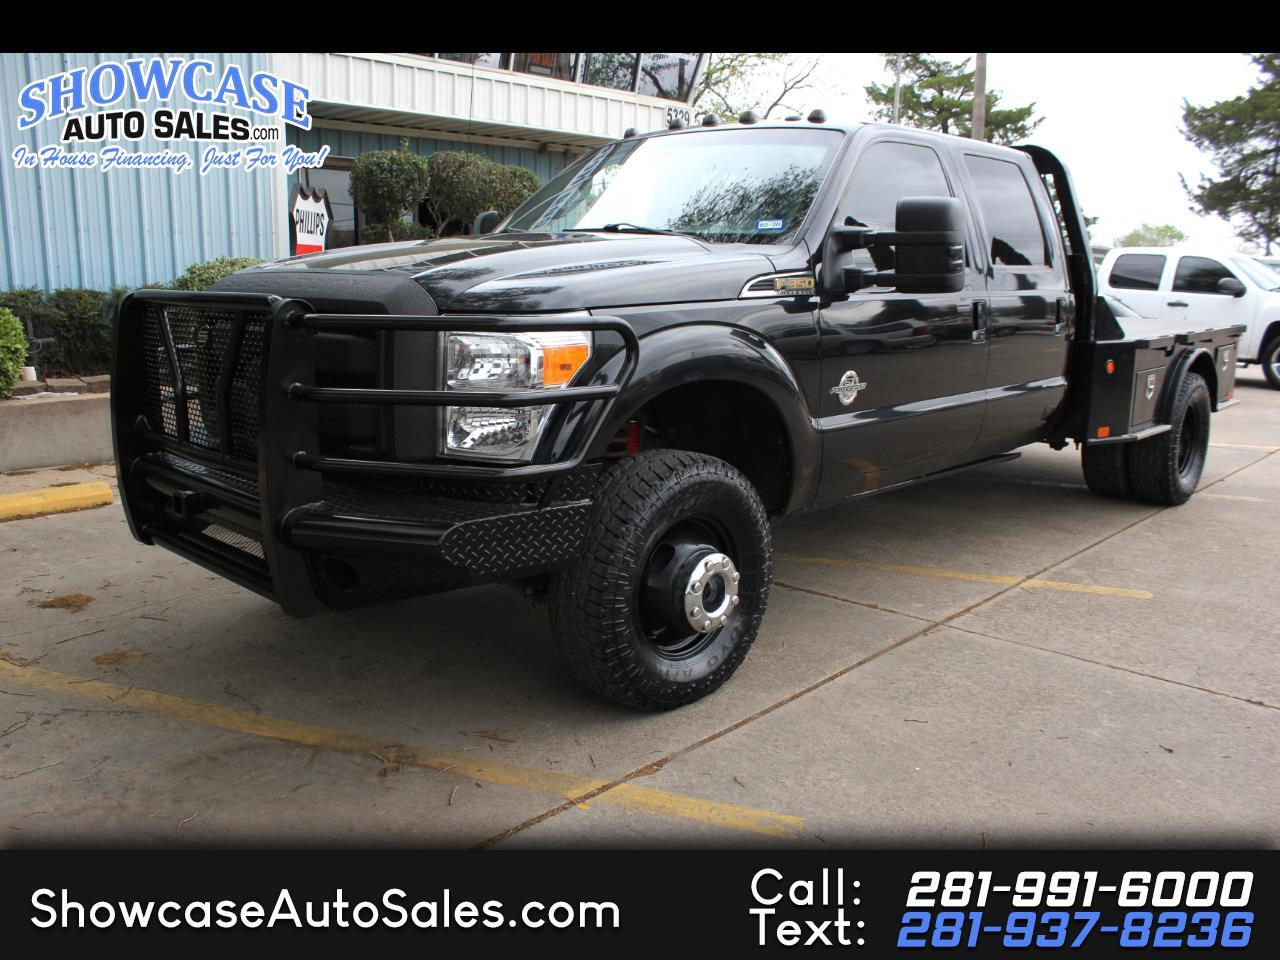 Ford F-350 SD Lariat Crew Cab Long Bed DRW 4WD 2012